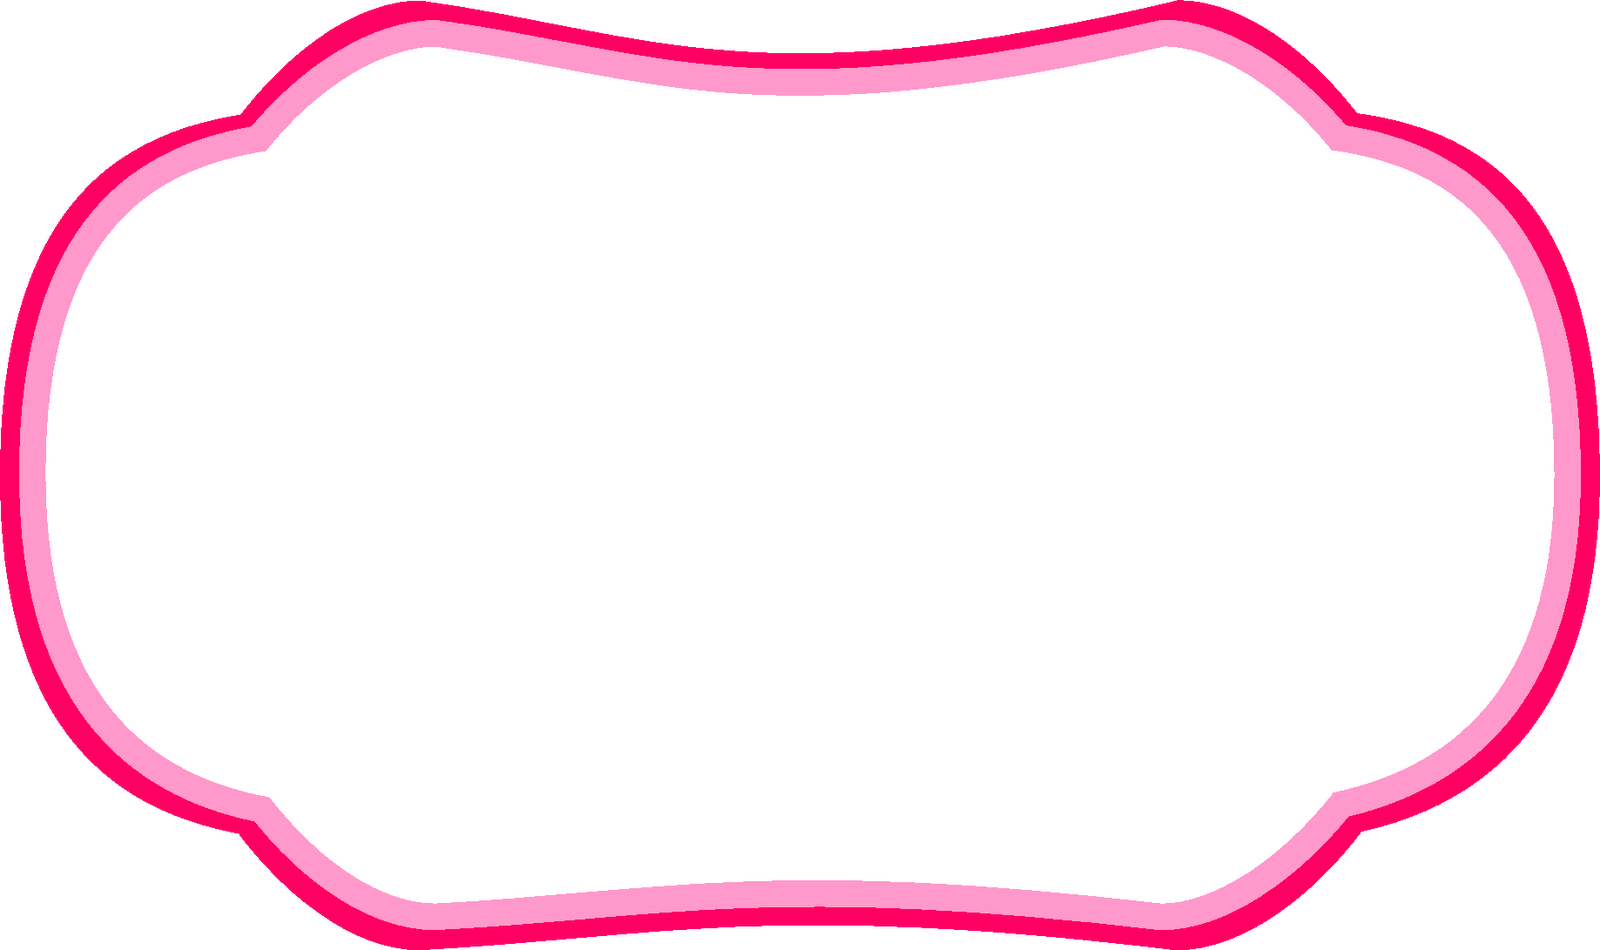 Cute frames png. Acessorios para template brushes